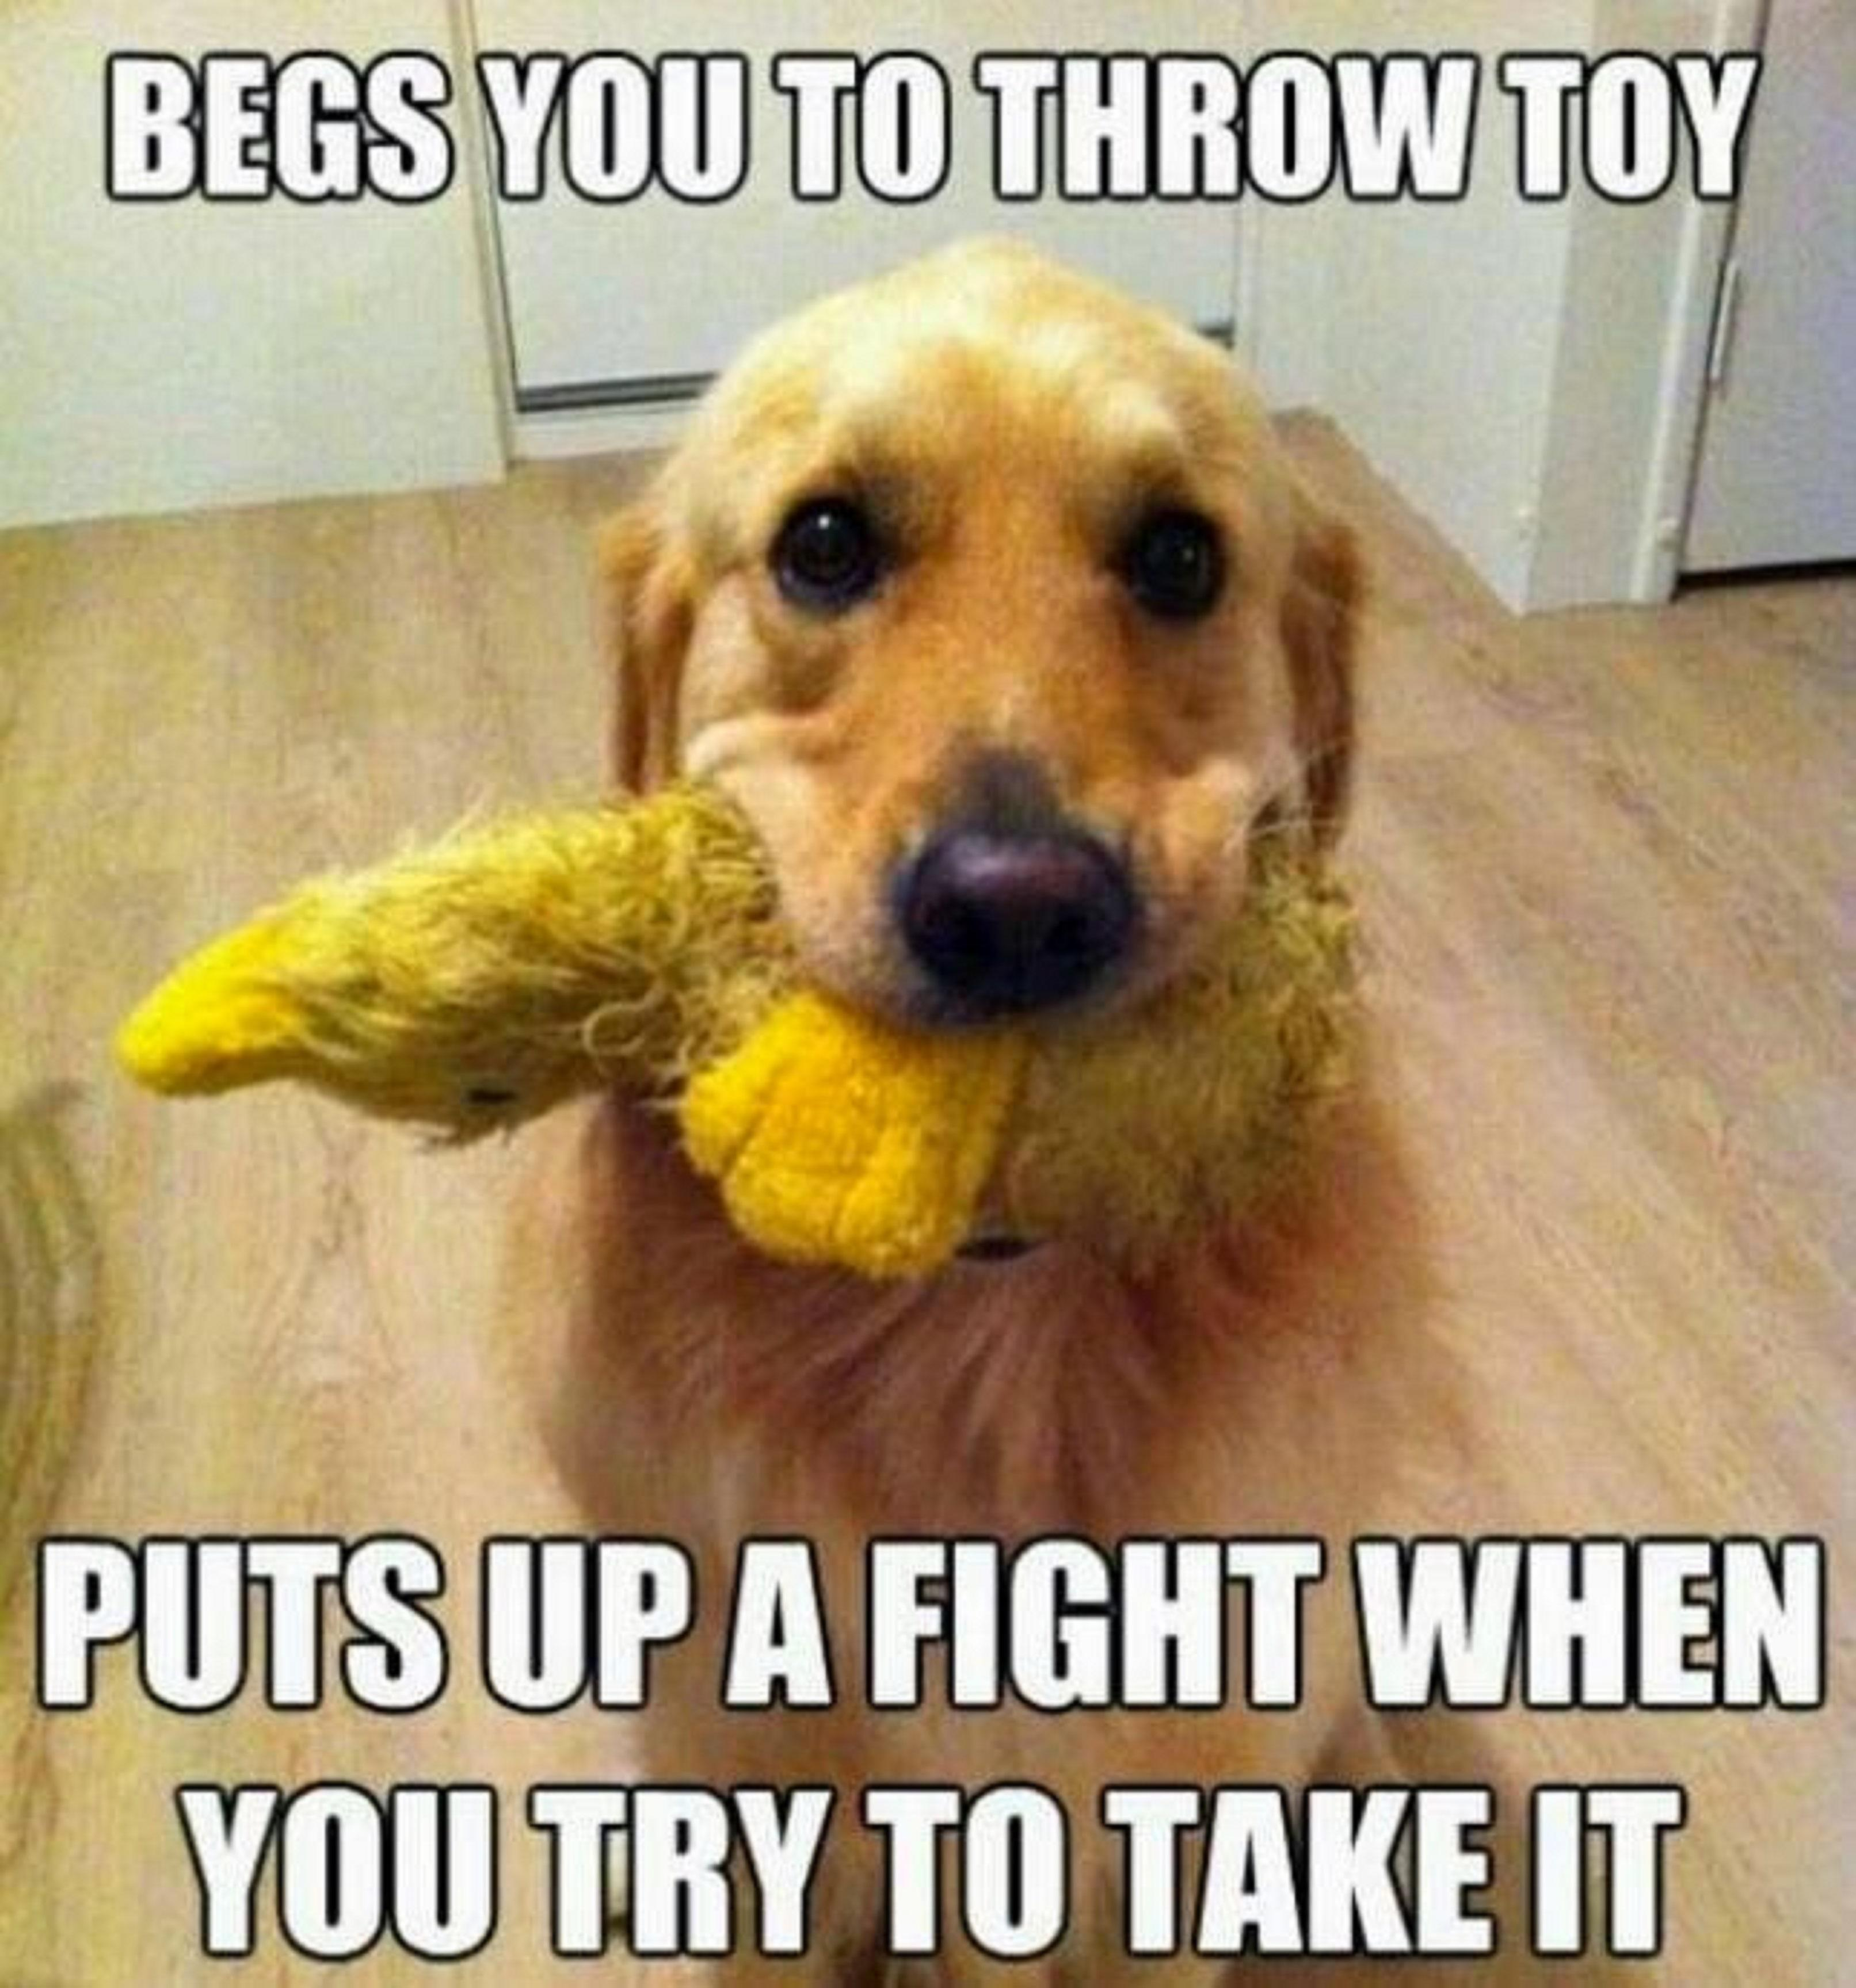 Begs you to throw toy puts up a fight when you try to take it